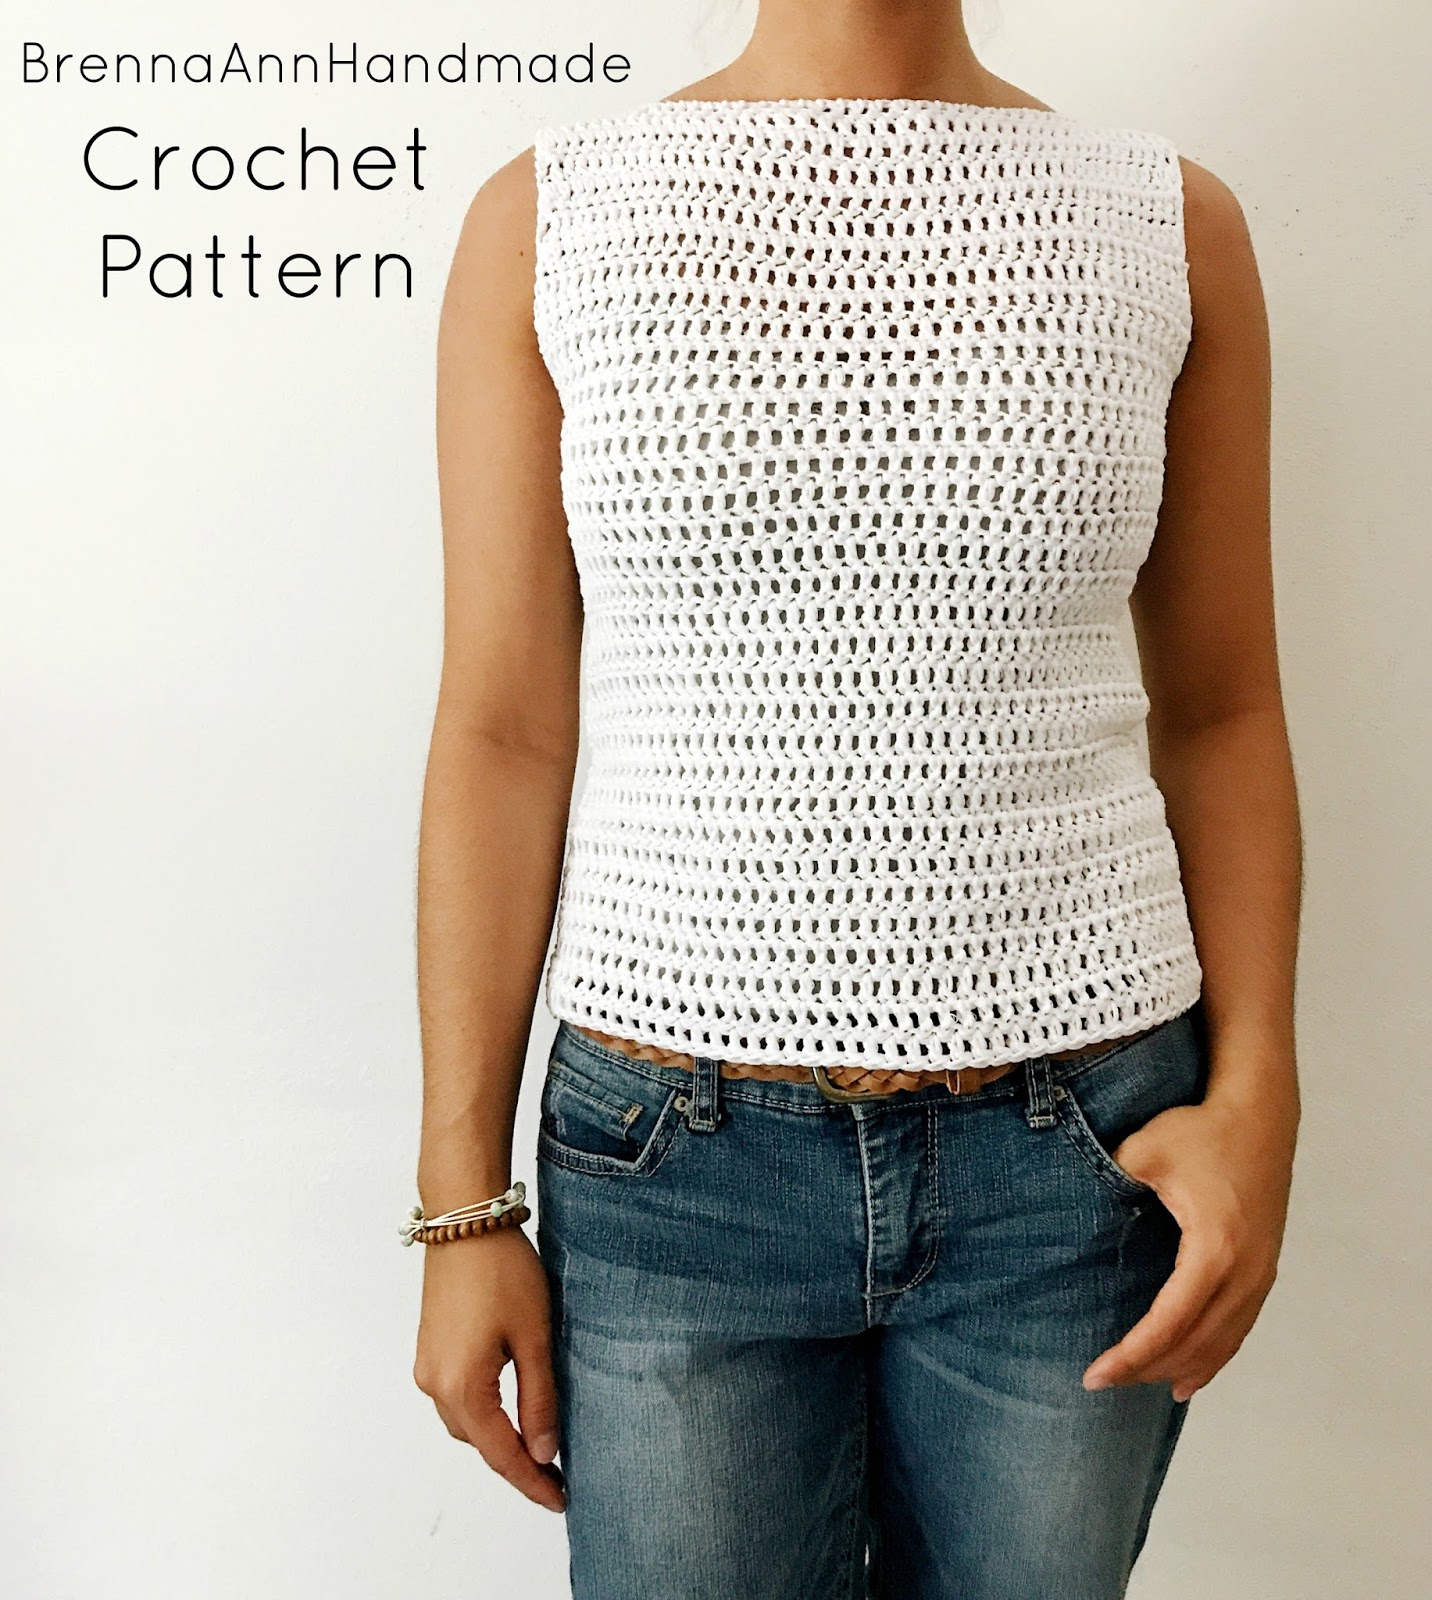 Brenna Ann Handmade New Crochet Pattern The Simple Spring Crochet Top